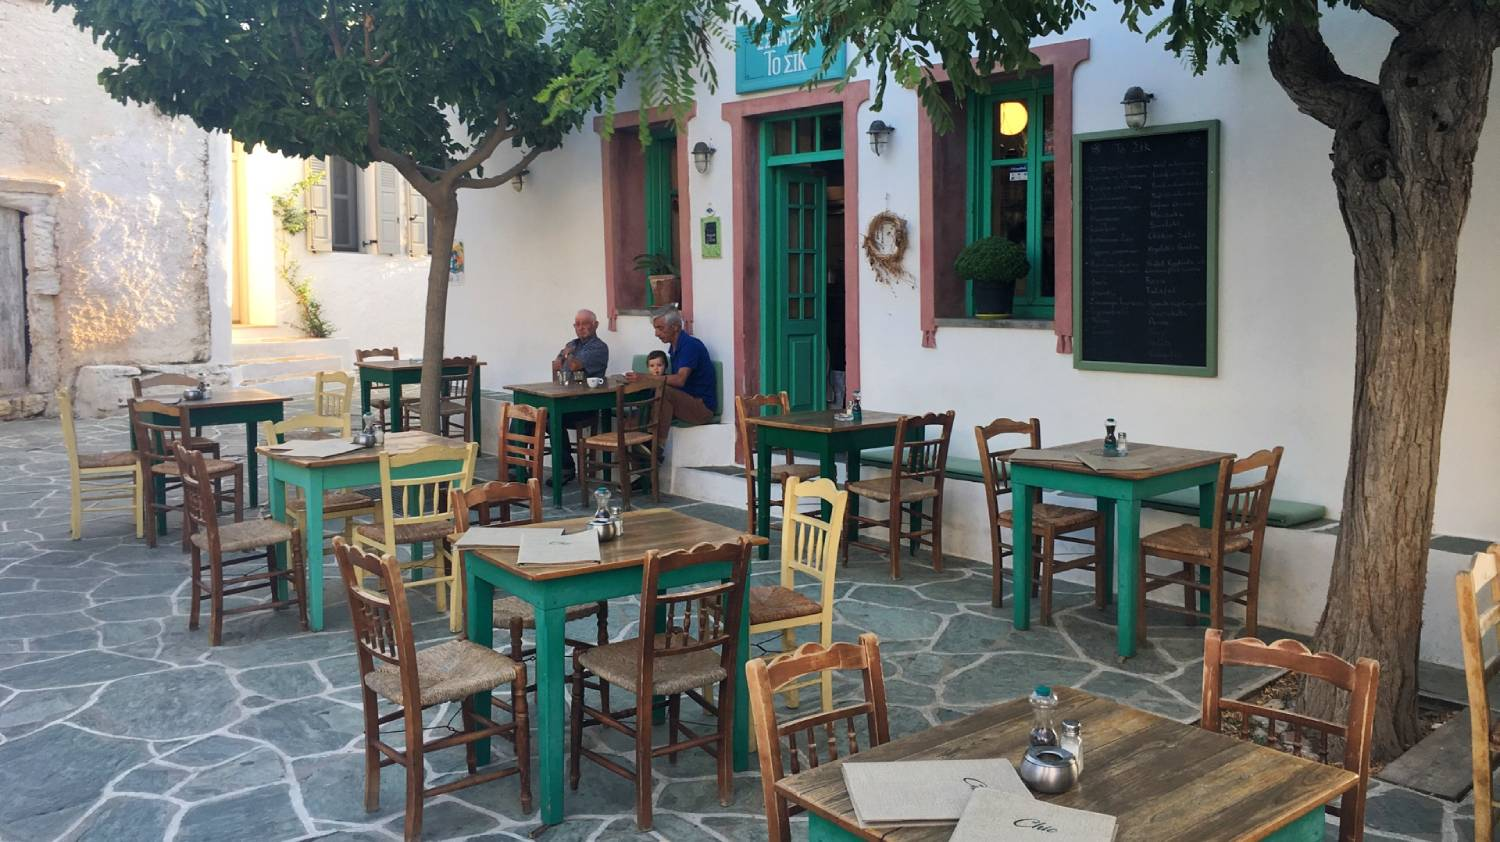 Restaurant Chic (To Sik) - Things To Do In Folegandros